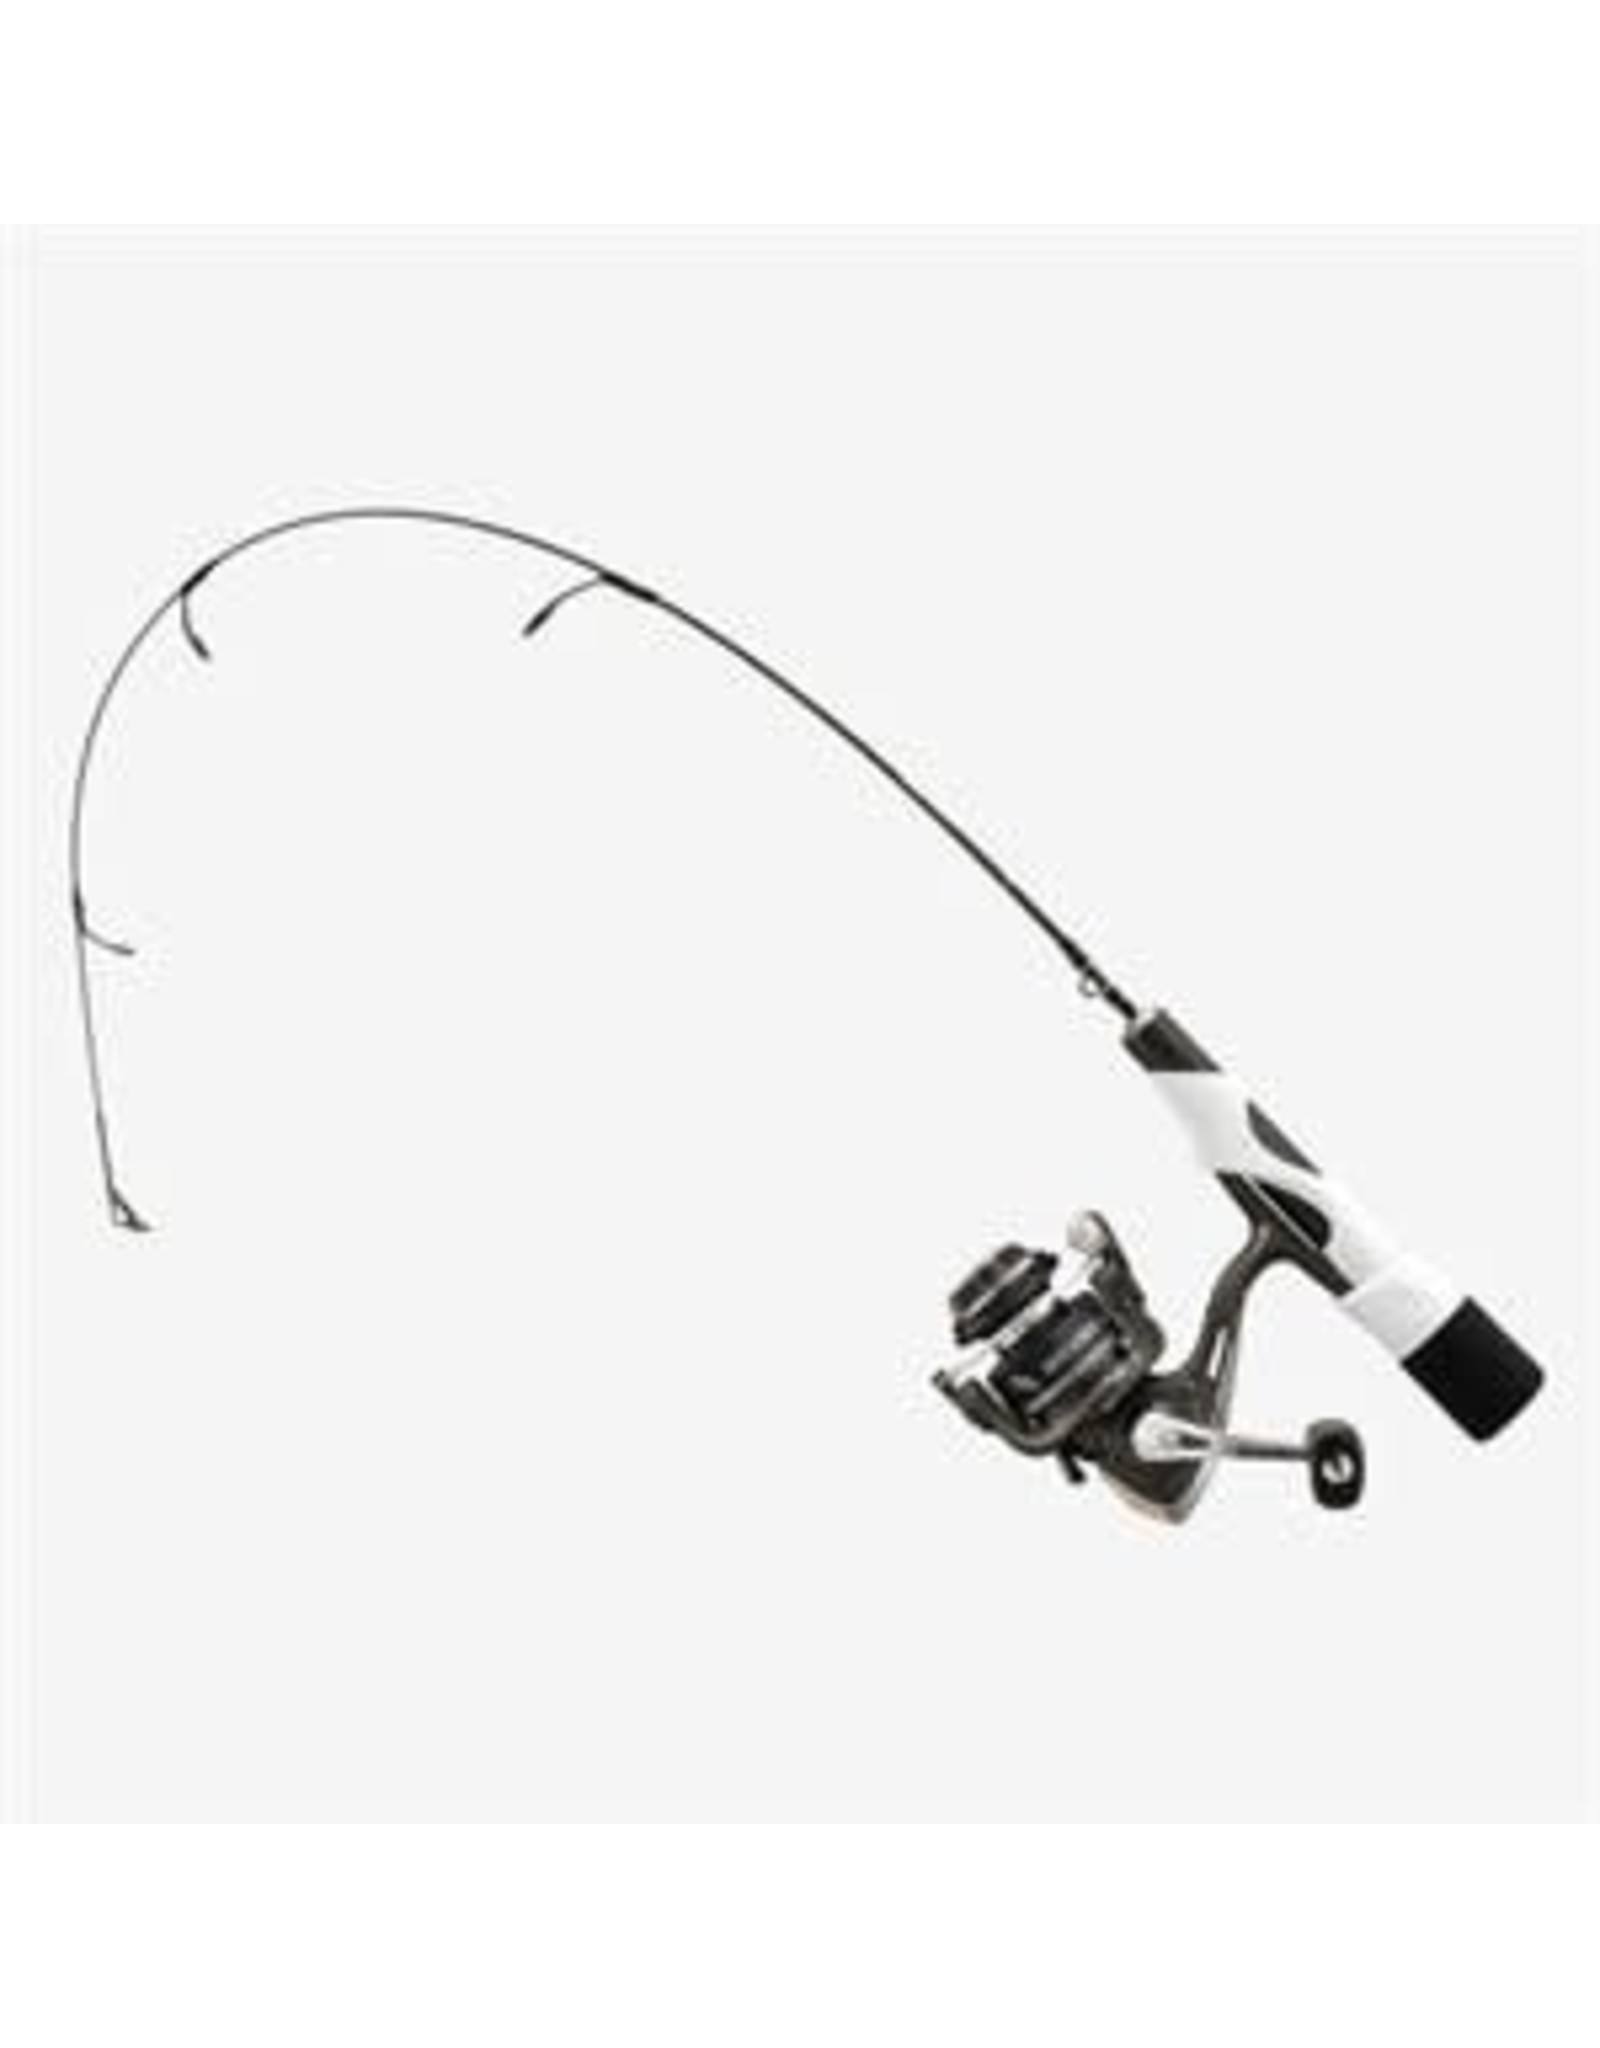 13 Fishing 13 Fishing Wicked Ice Spinning Combo